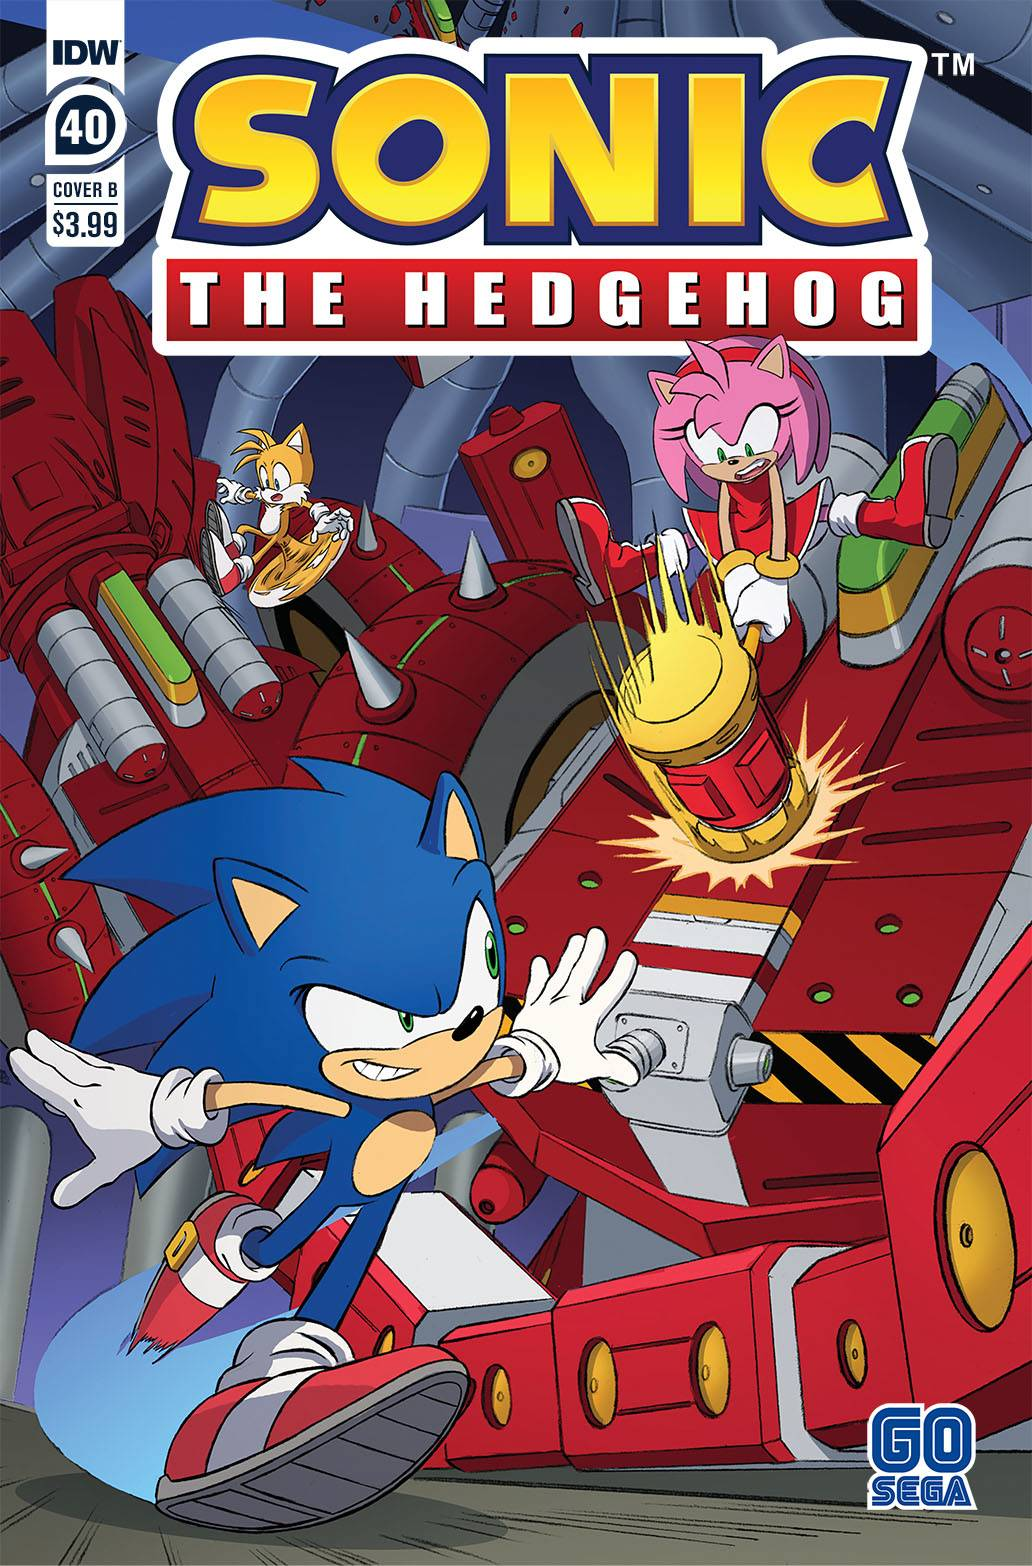 Sonic The Hedgehog #40